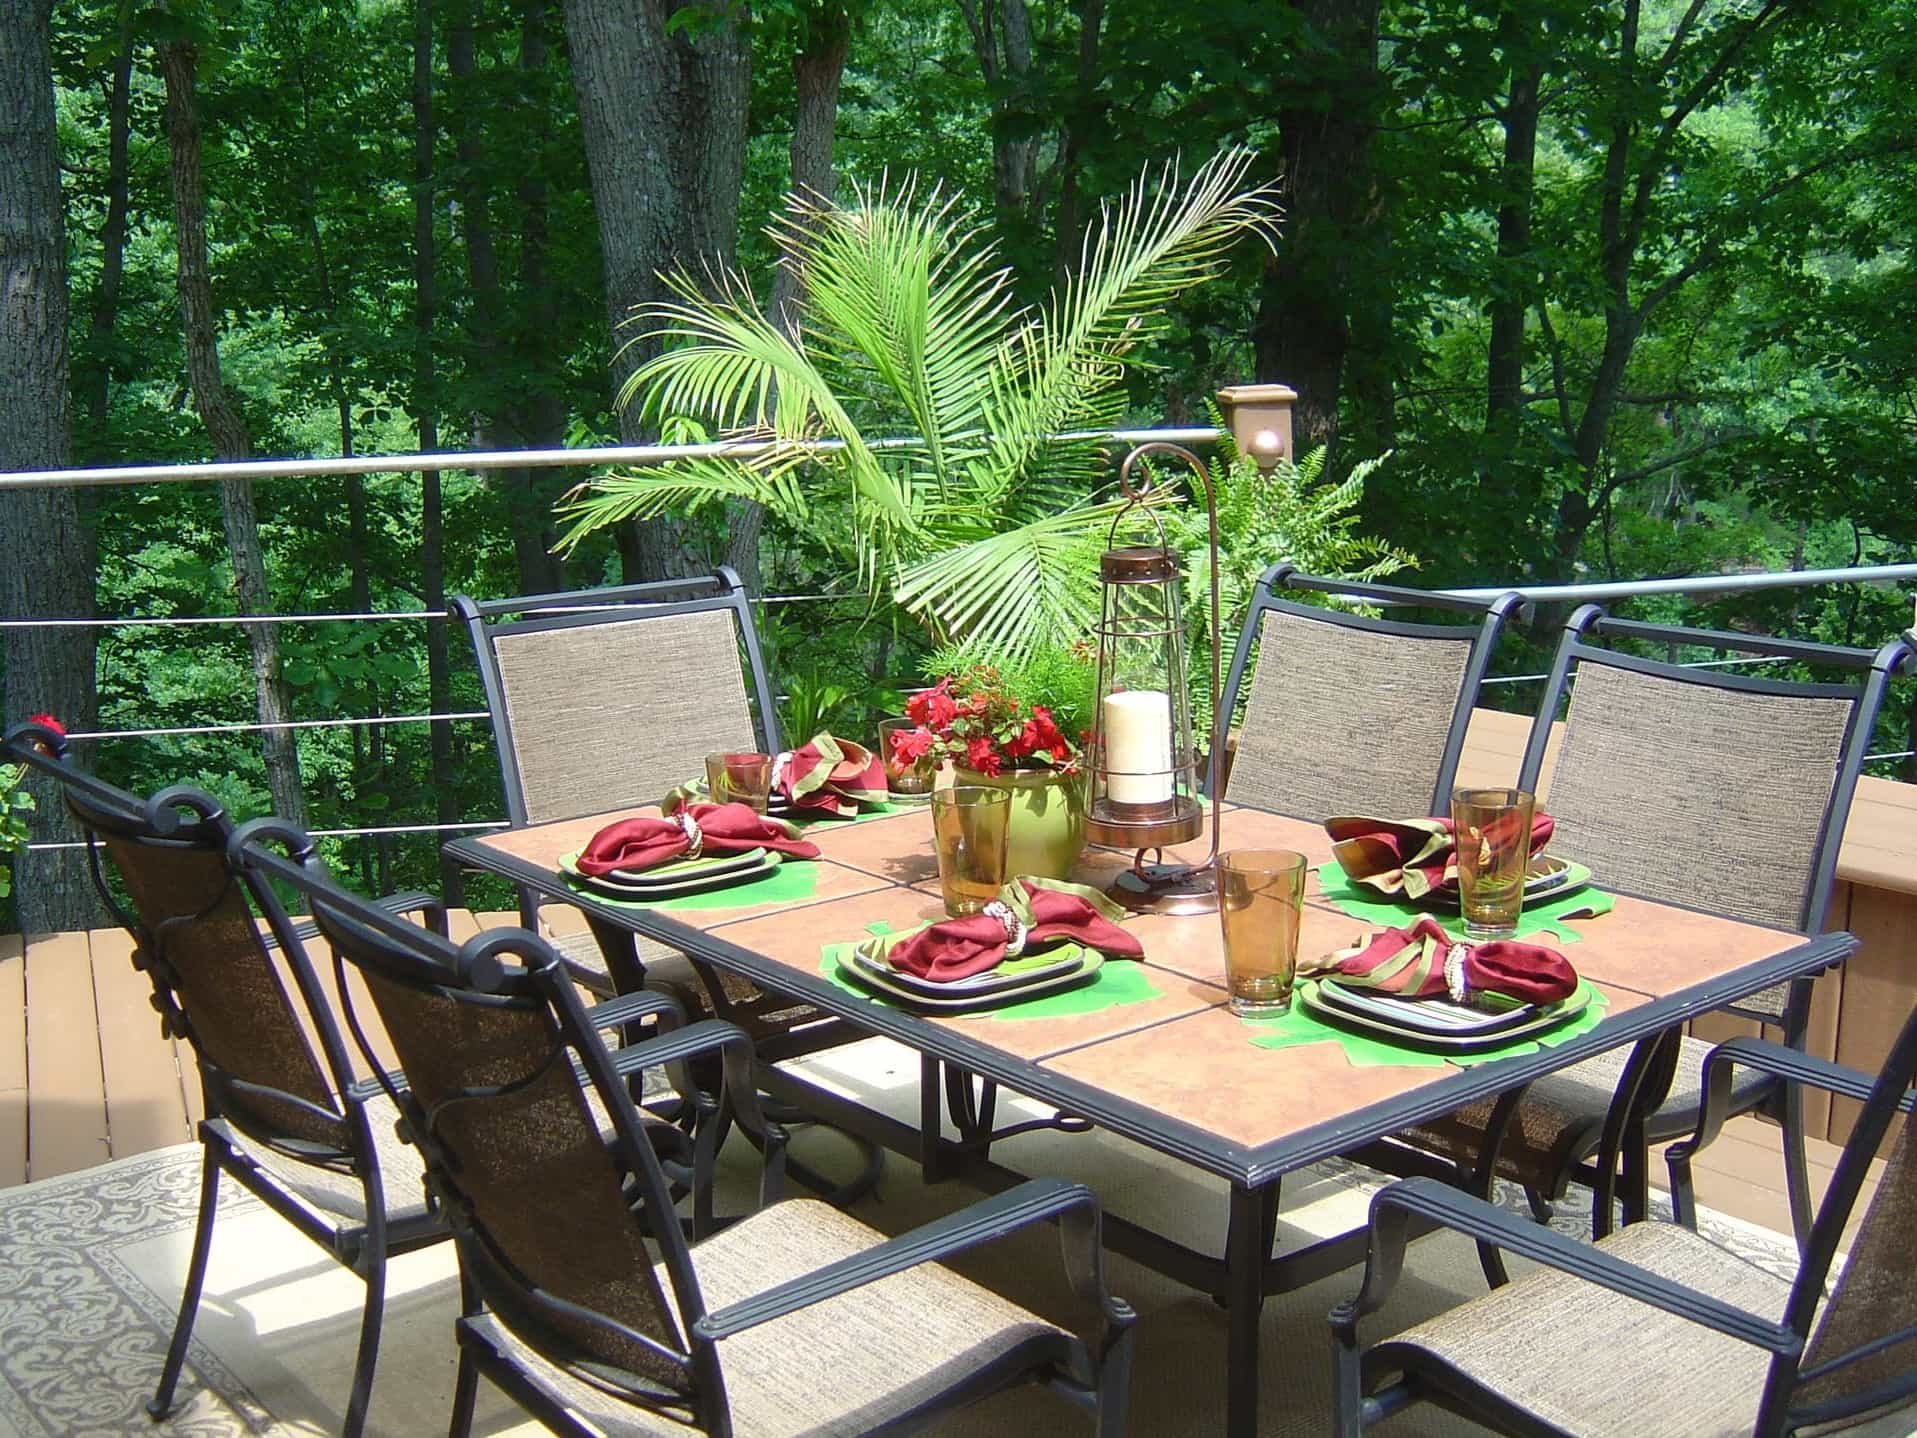 Candle And Floral Centerpieces For Romantic Outdoor Dinner At Home (View 8 of 8)